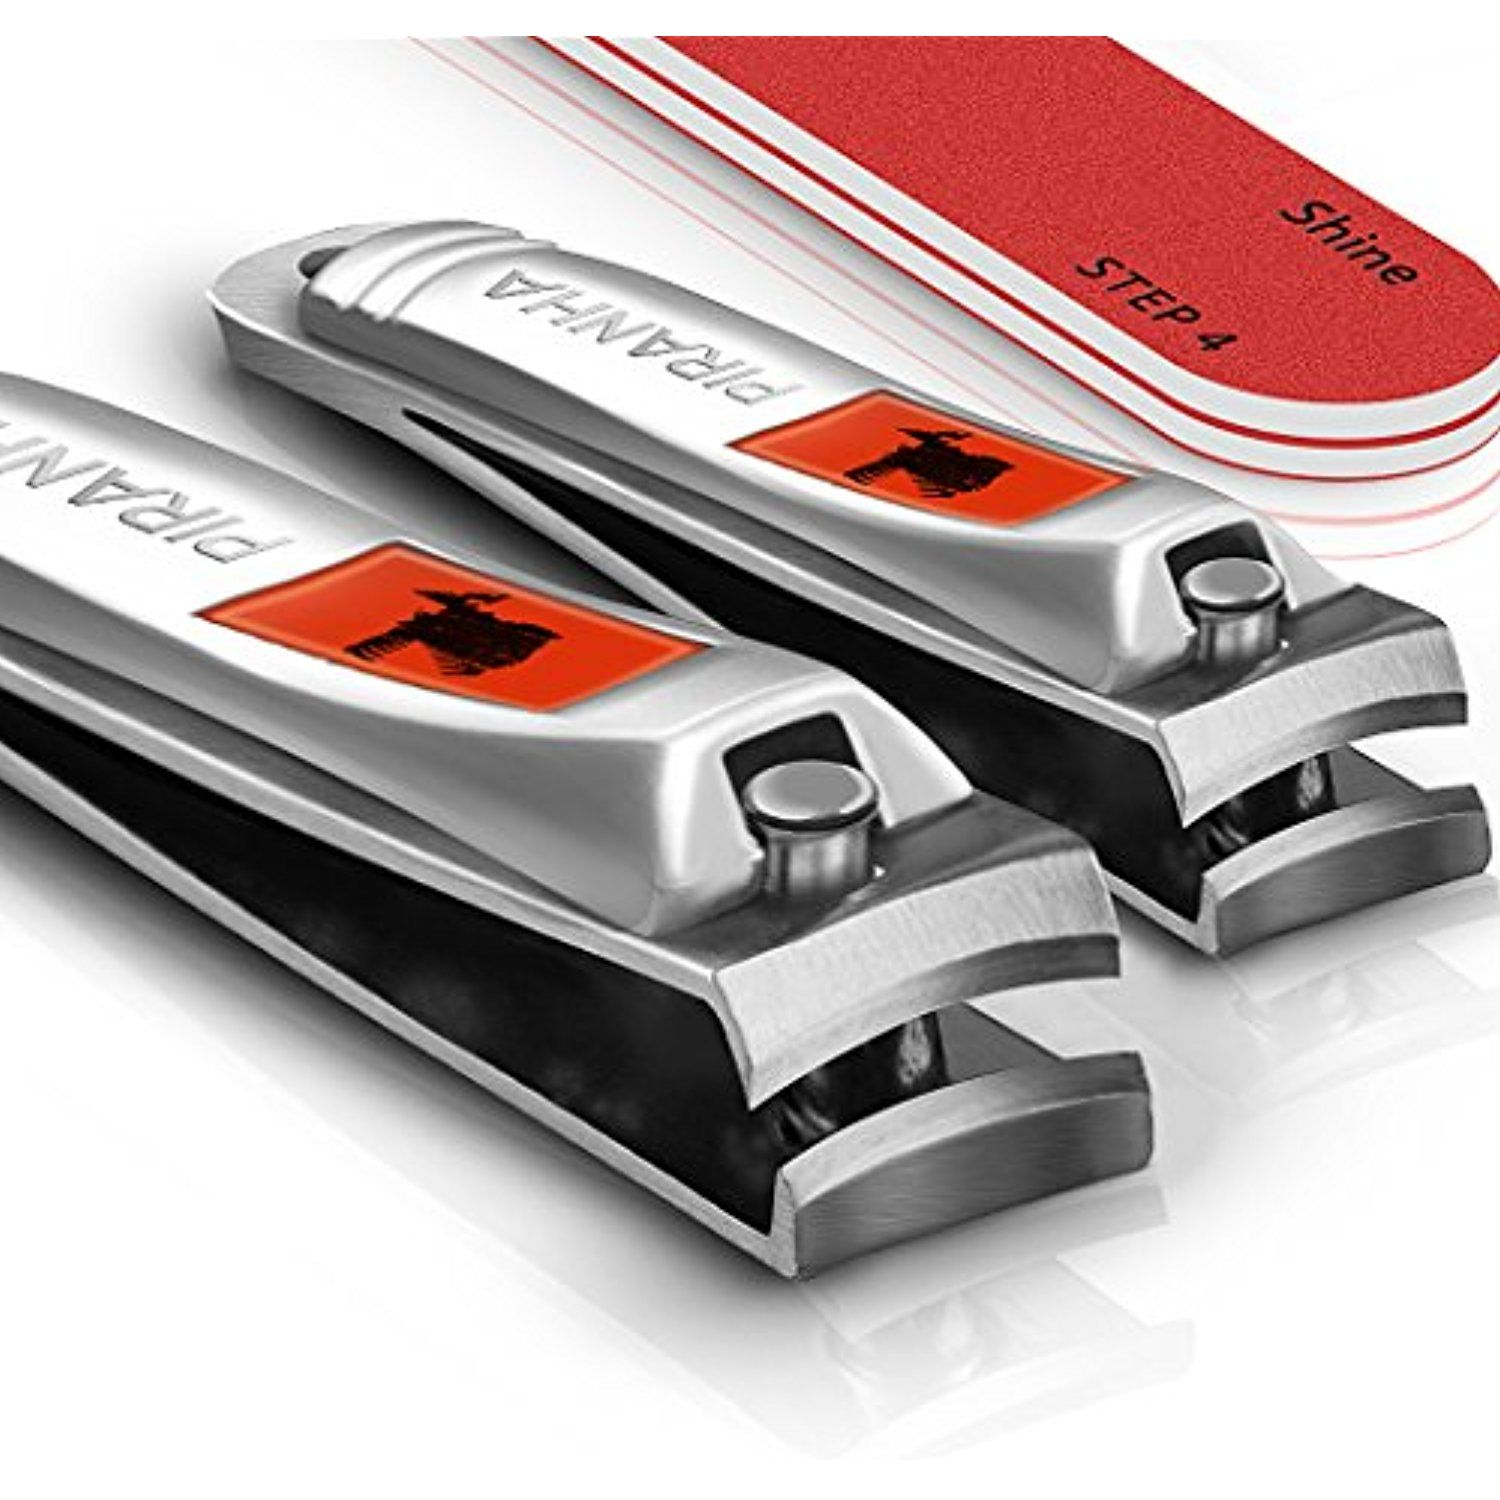 Sensible Needs Piranha Nail Clippers Set With Buffer Fingernail And Toenail Cutters Manicure